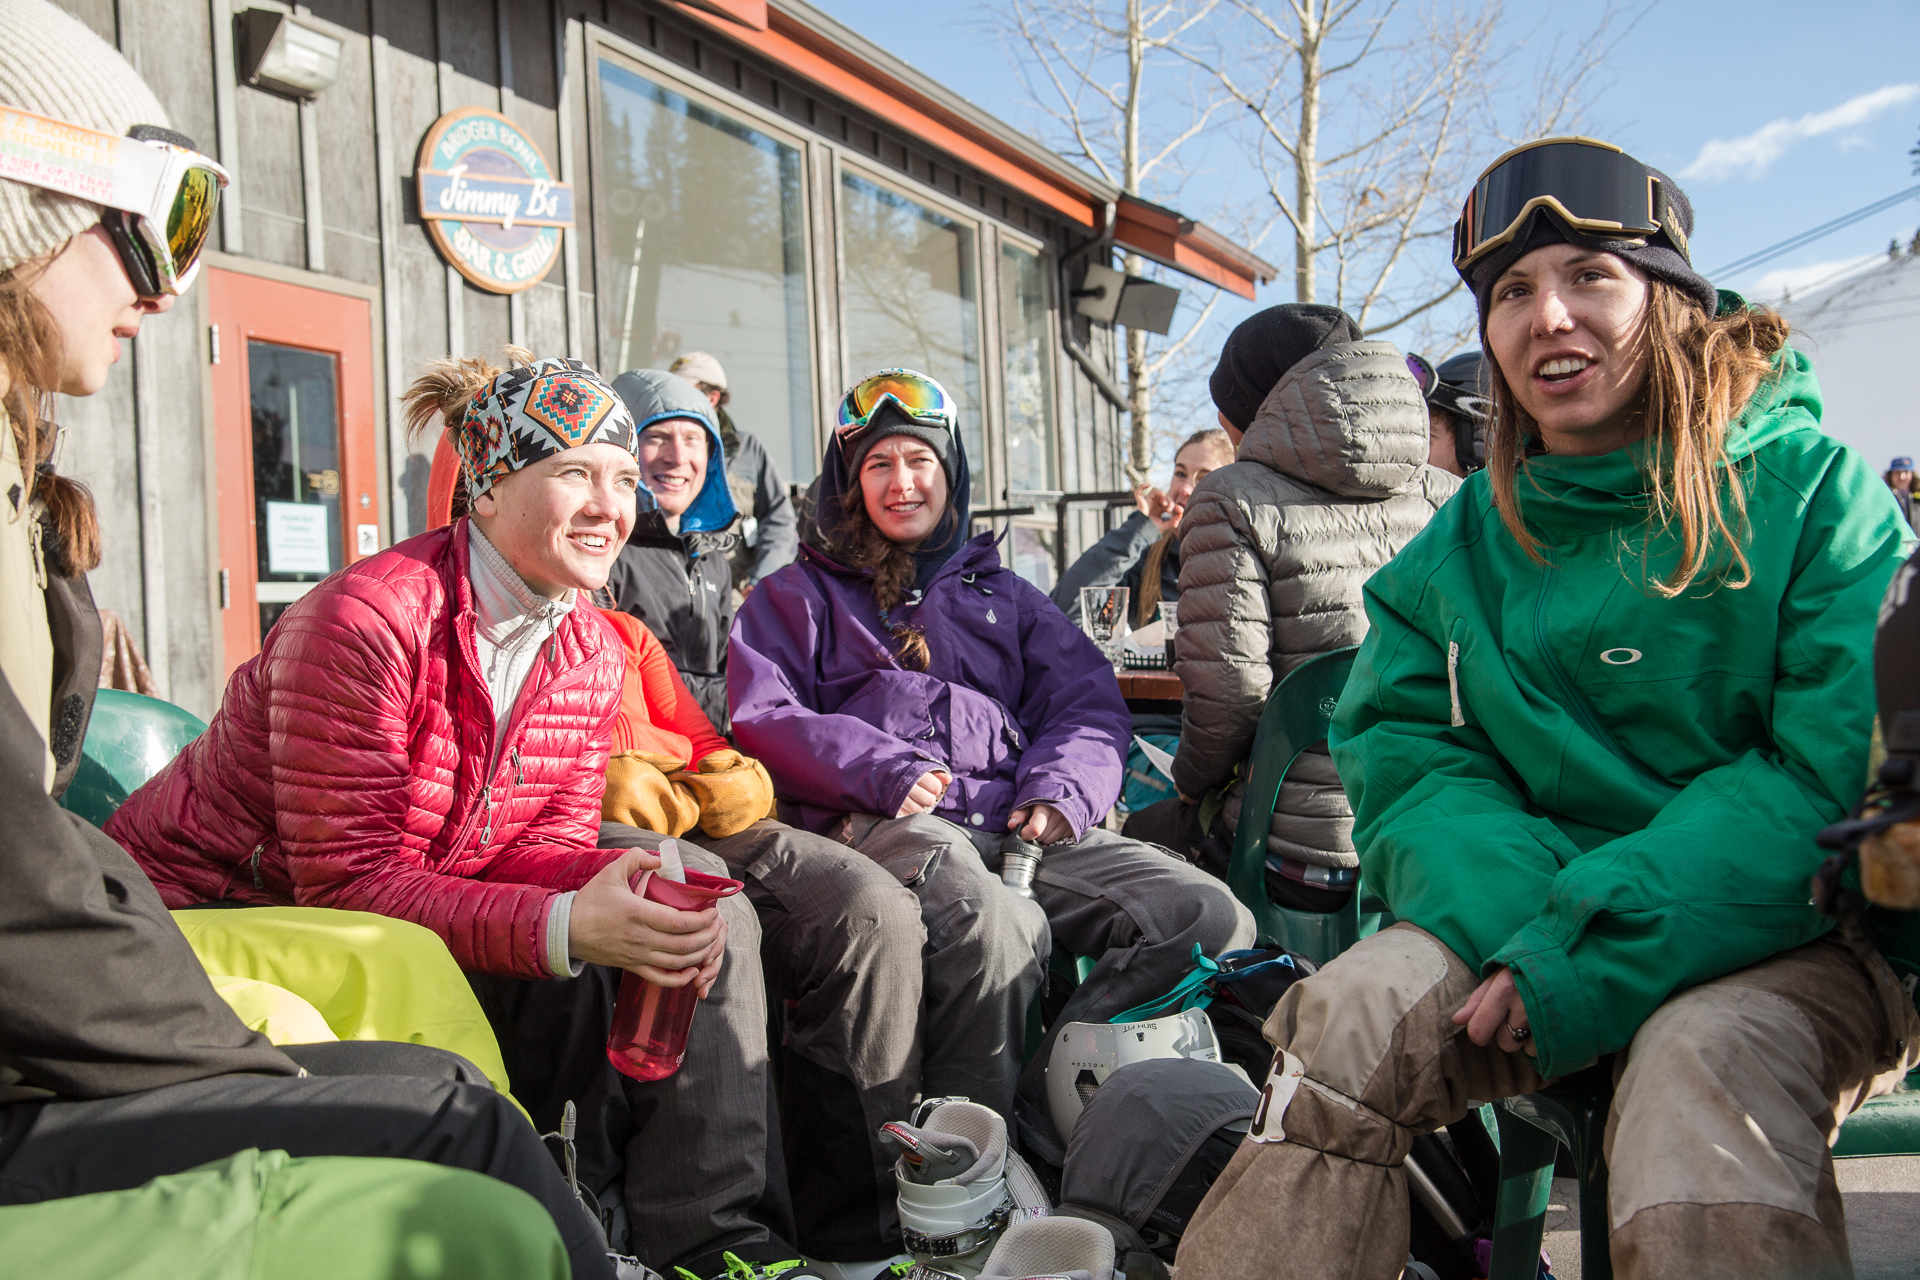 Andie Creel, MacKenzie Lisac, and their crew at Bridger are living the good life. PHOTO: Jason Thompson